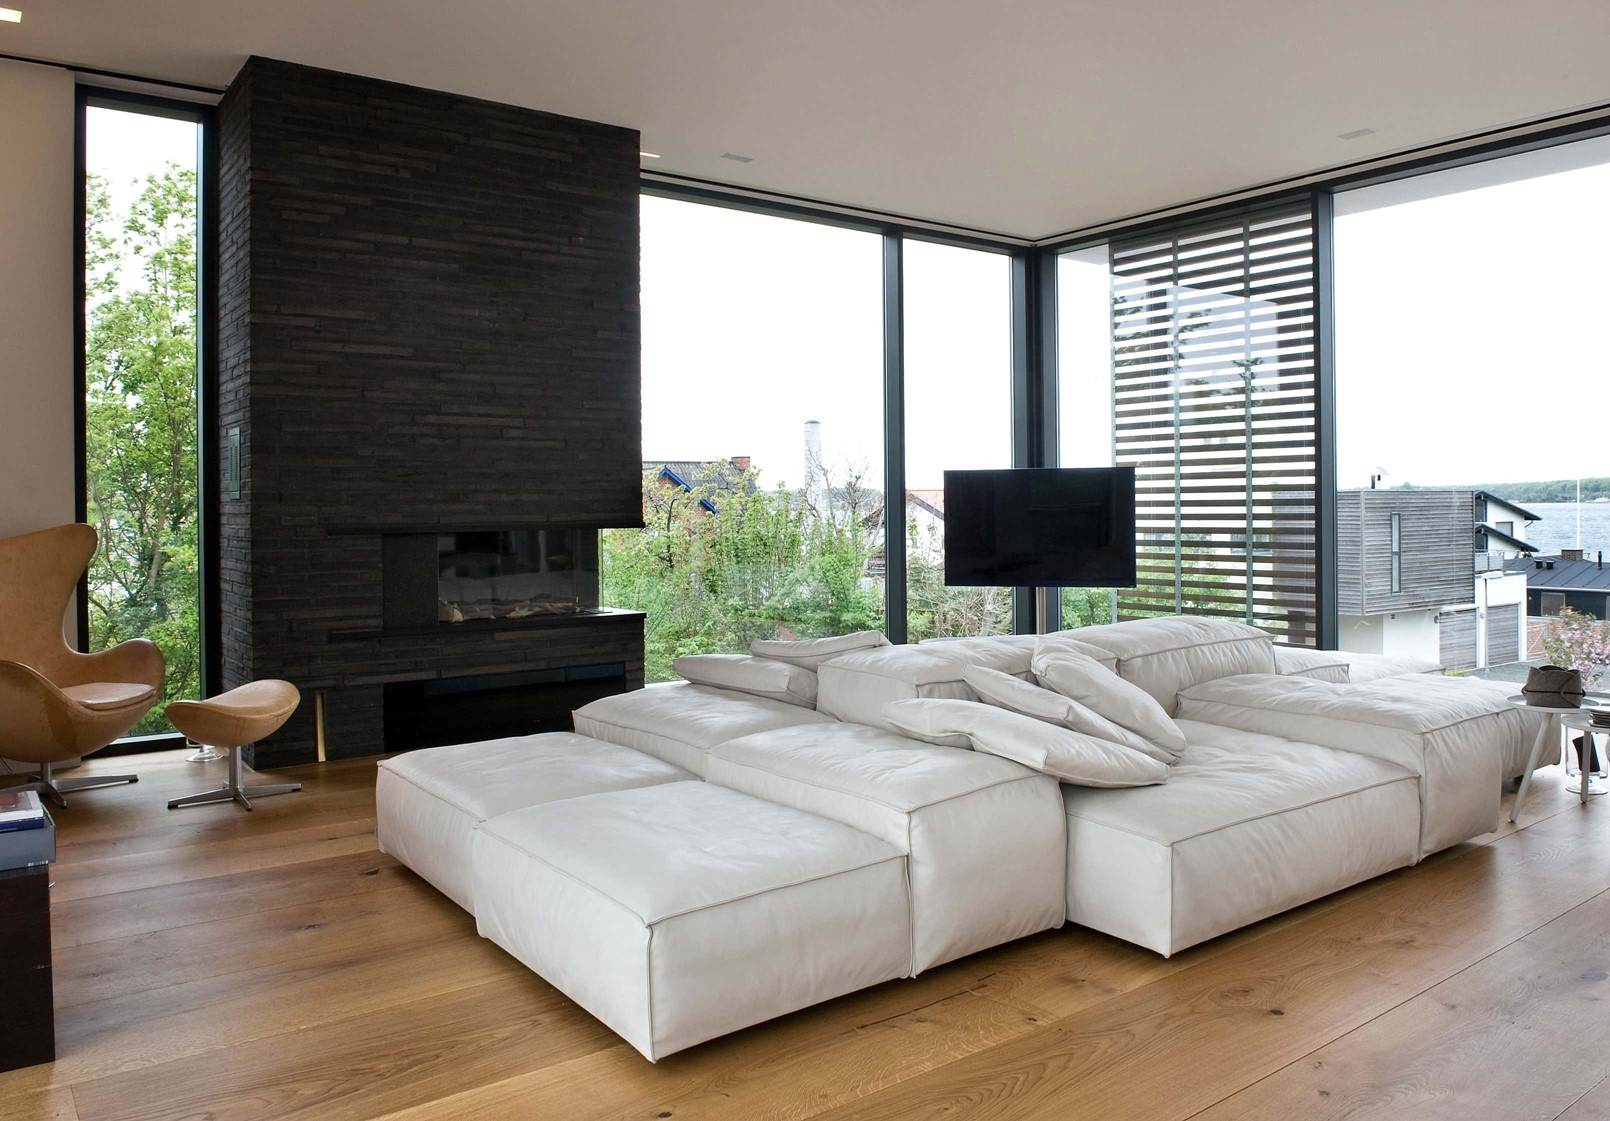 oak-hardwood-floors-heartoak_natural-oil_strib-residence_livingroom_dinesen.jpg